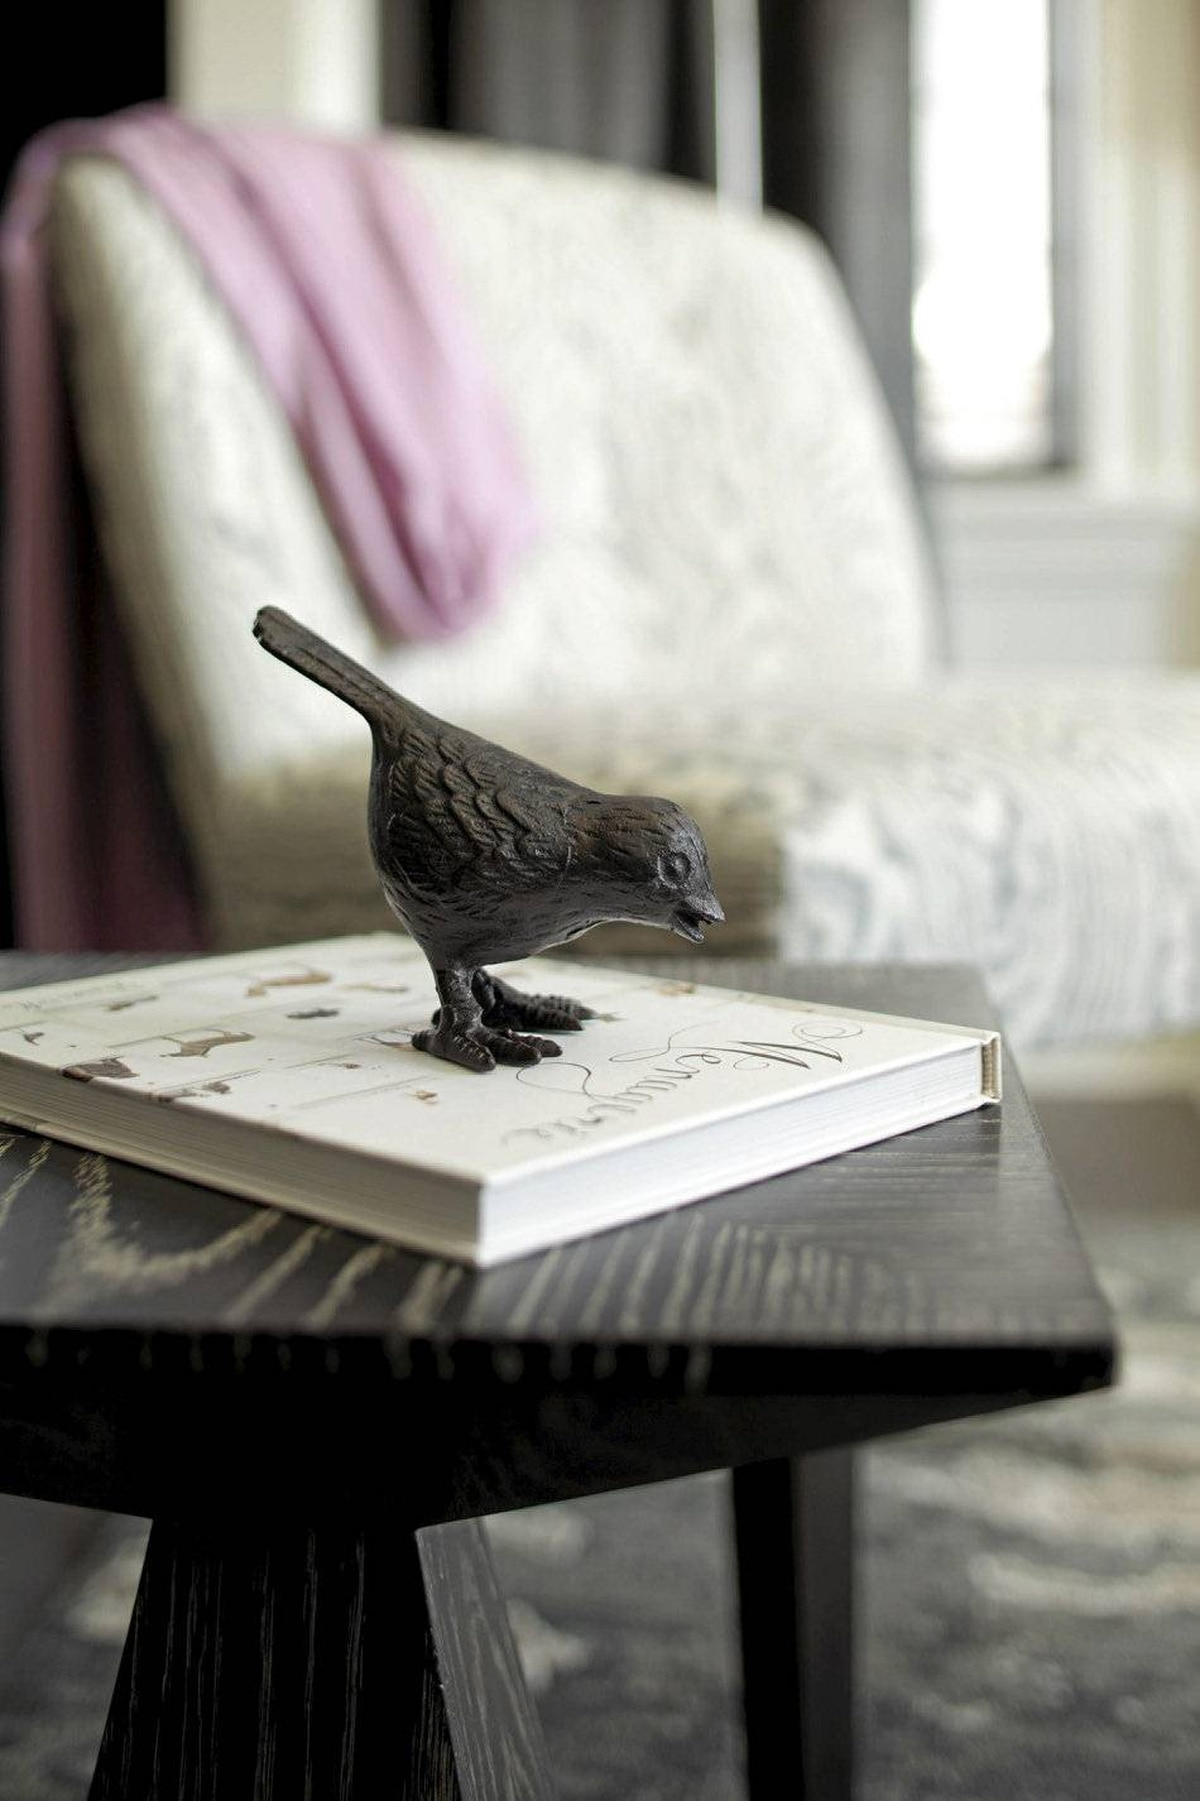 Bird statue on the coffee table. A cast concrete fireplace facade with a simple profile achieves a delicate balance: The material's weight echoes the home's substance while its finish accentuates the muted elegance of the room's furnishings.